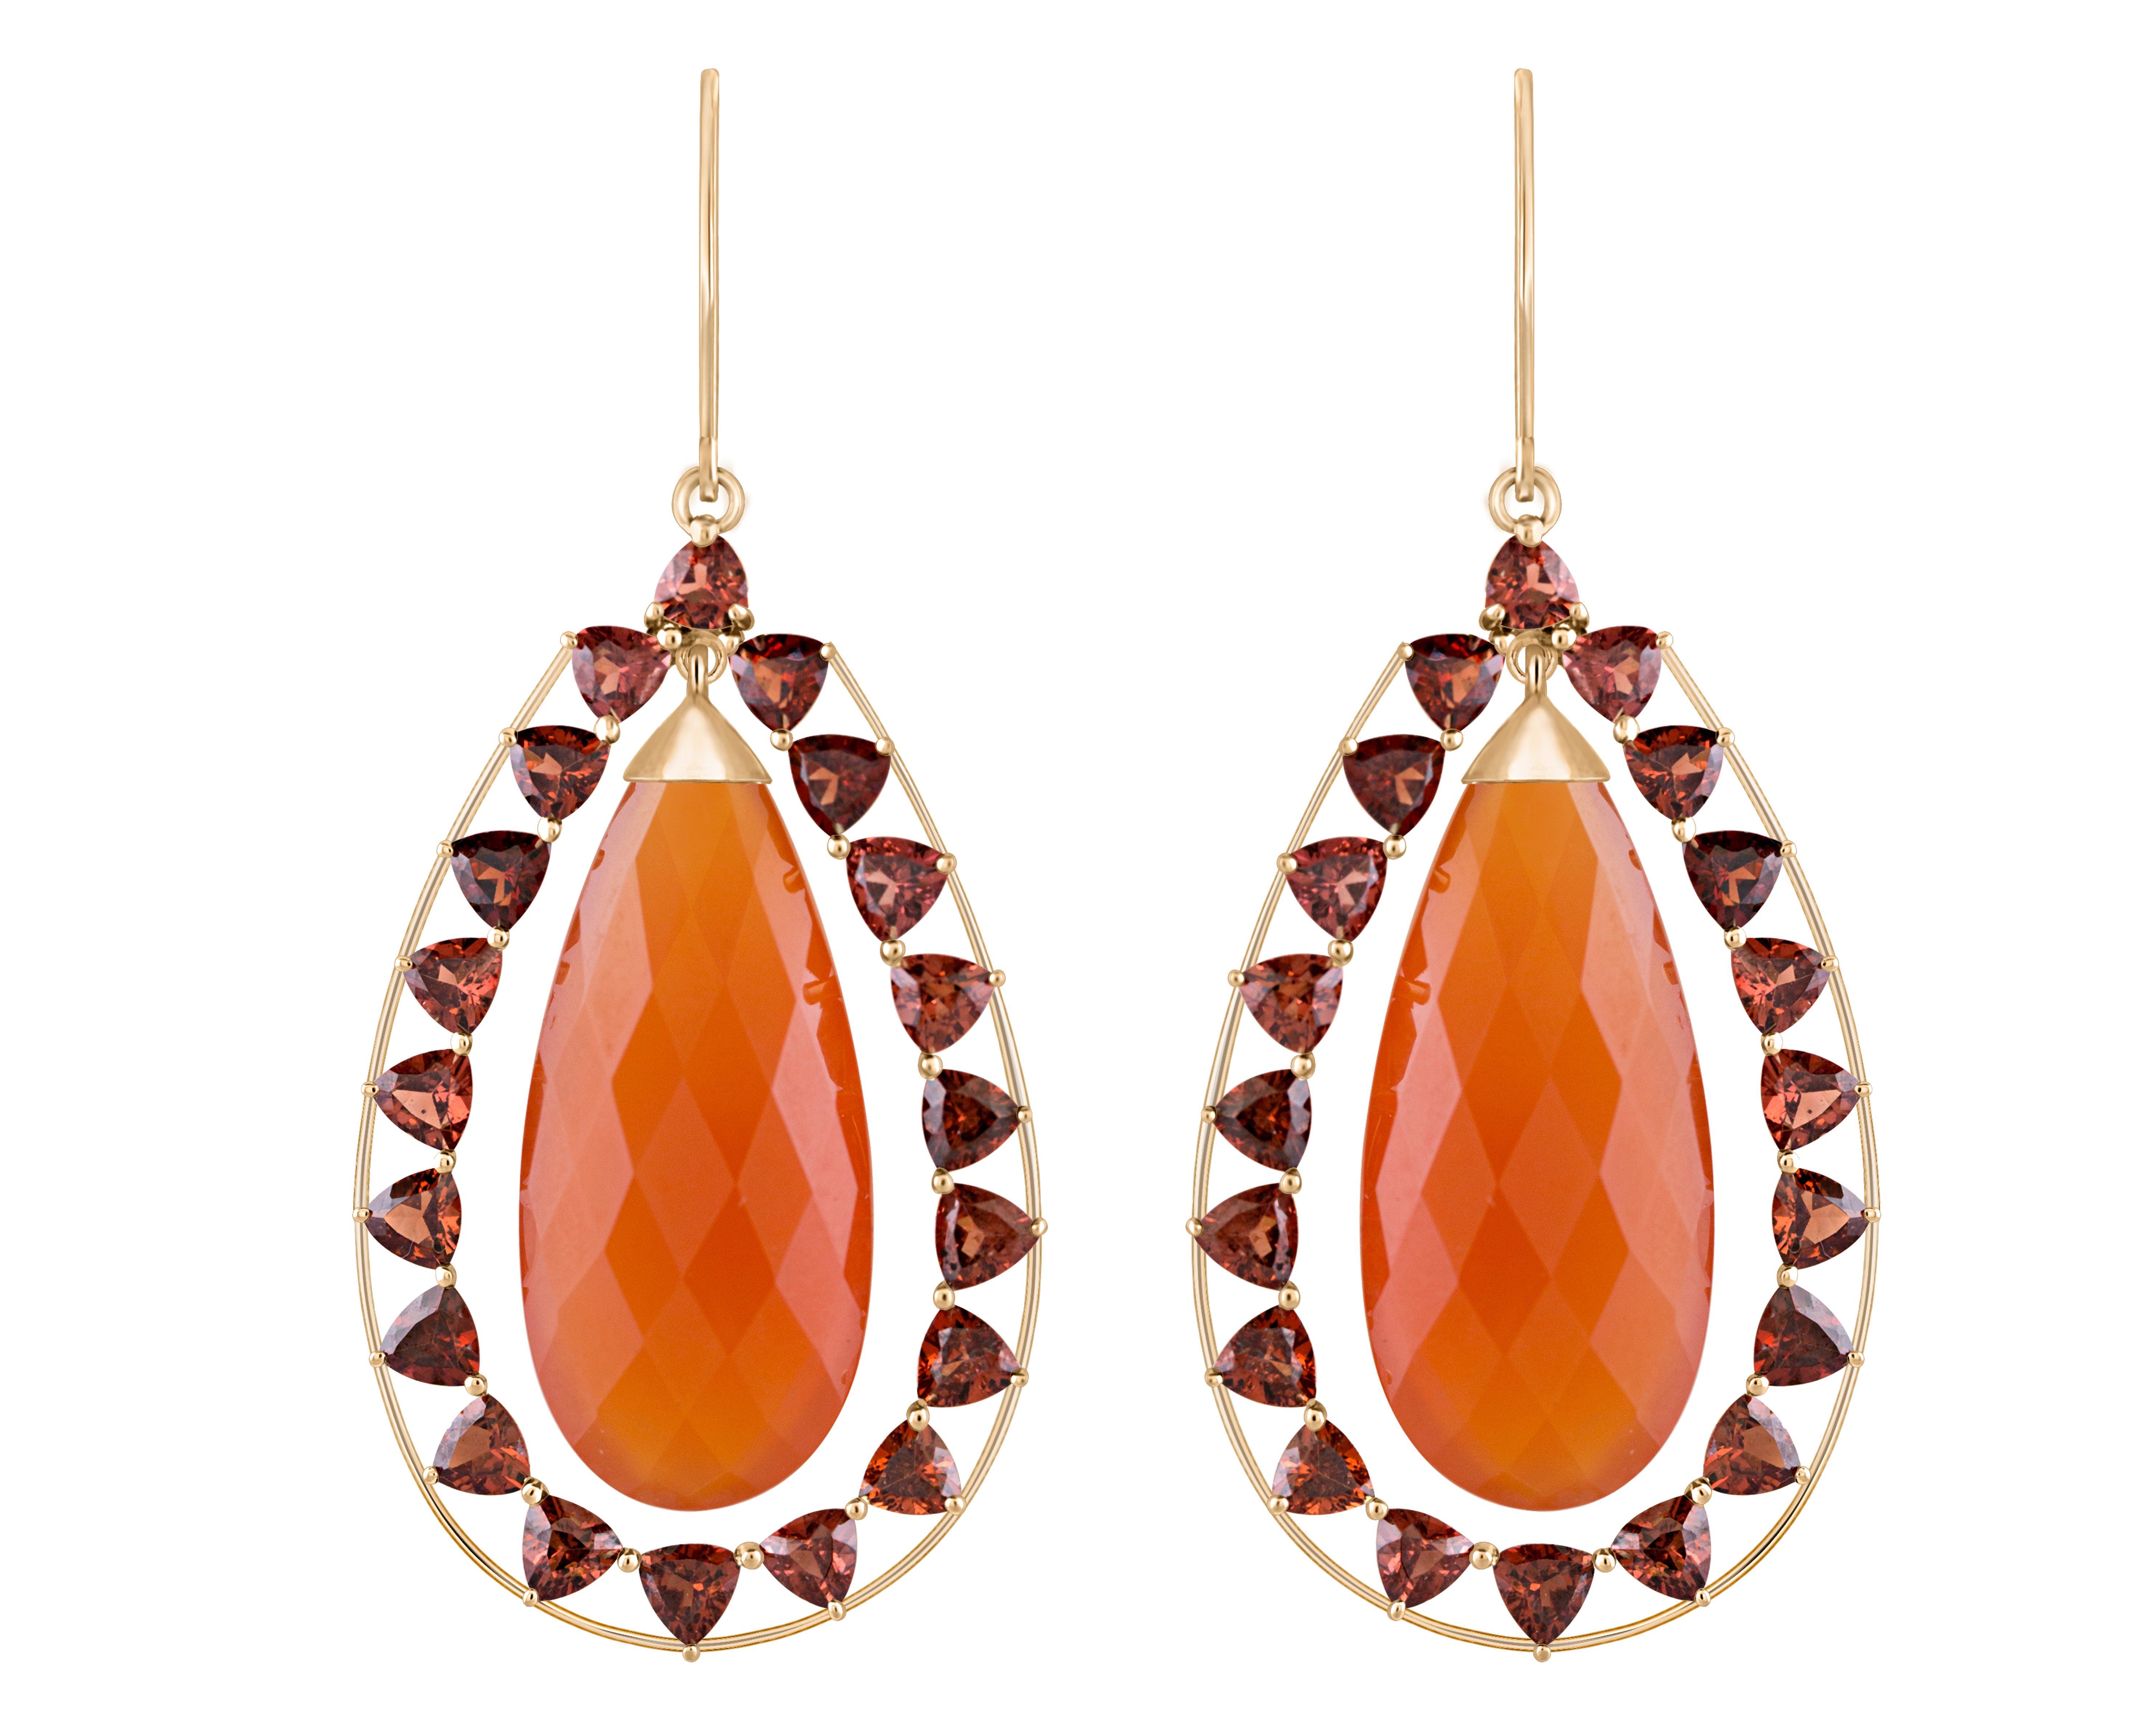 Arya Esha Galaxy collection Veela earrings | JCK On Your Market